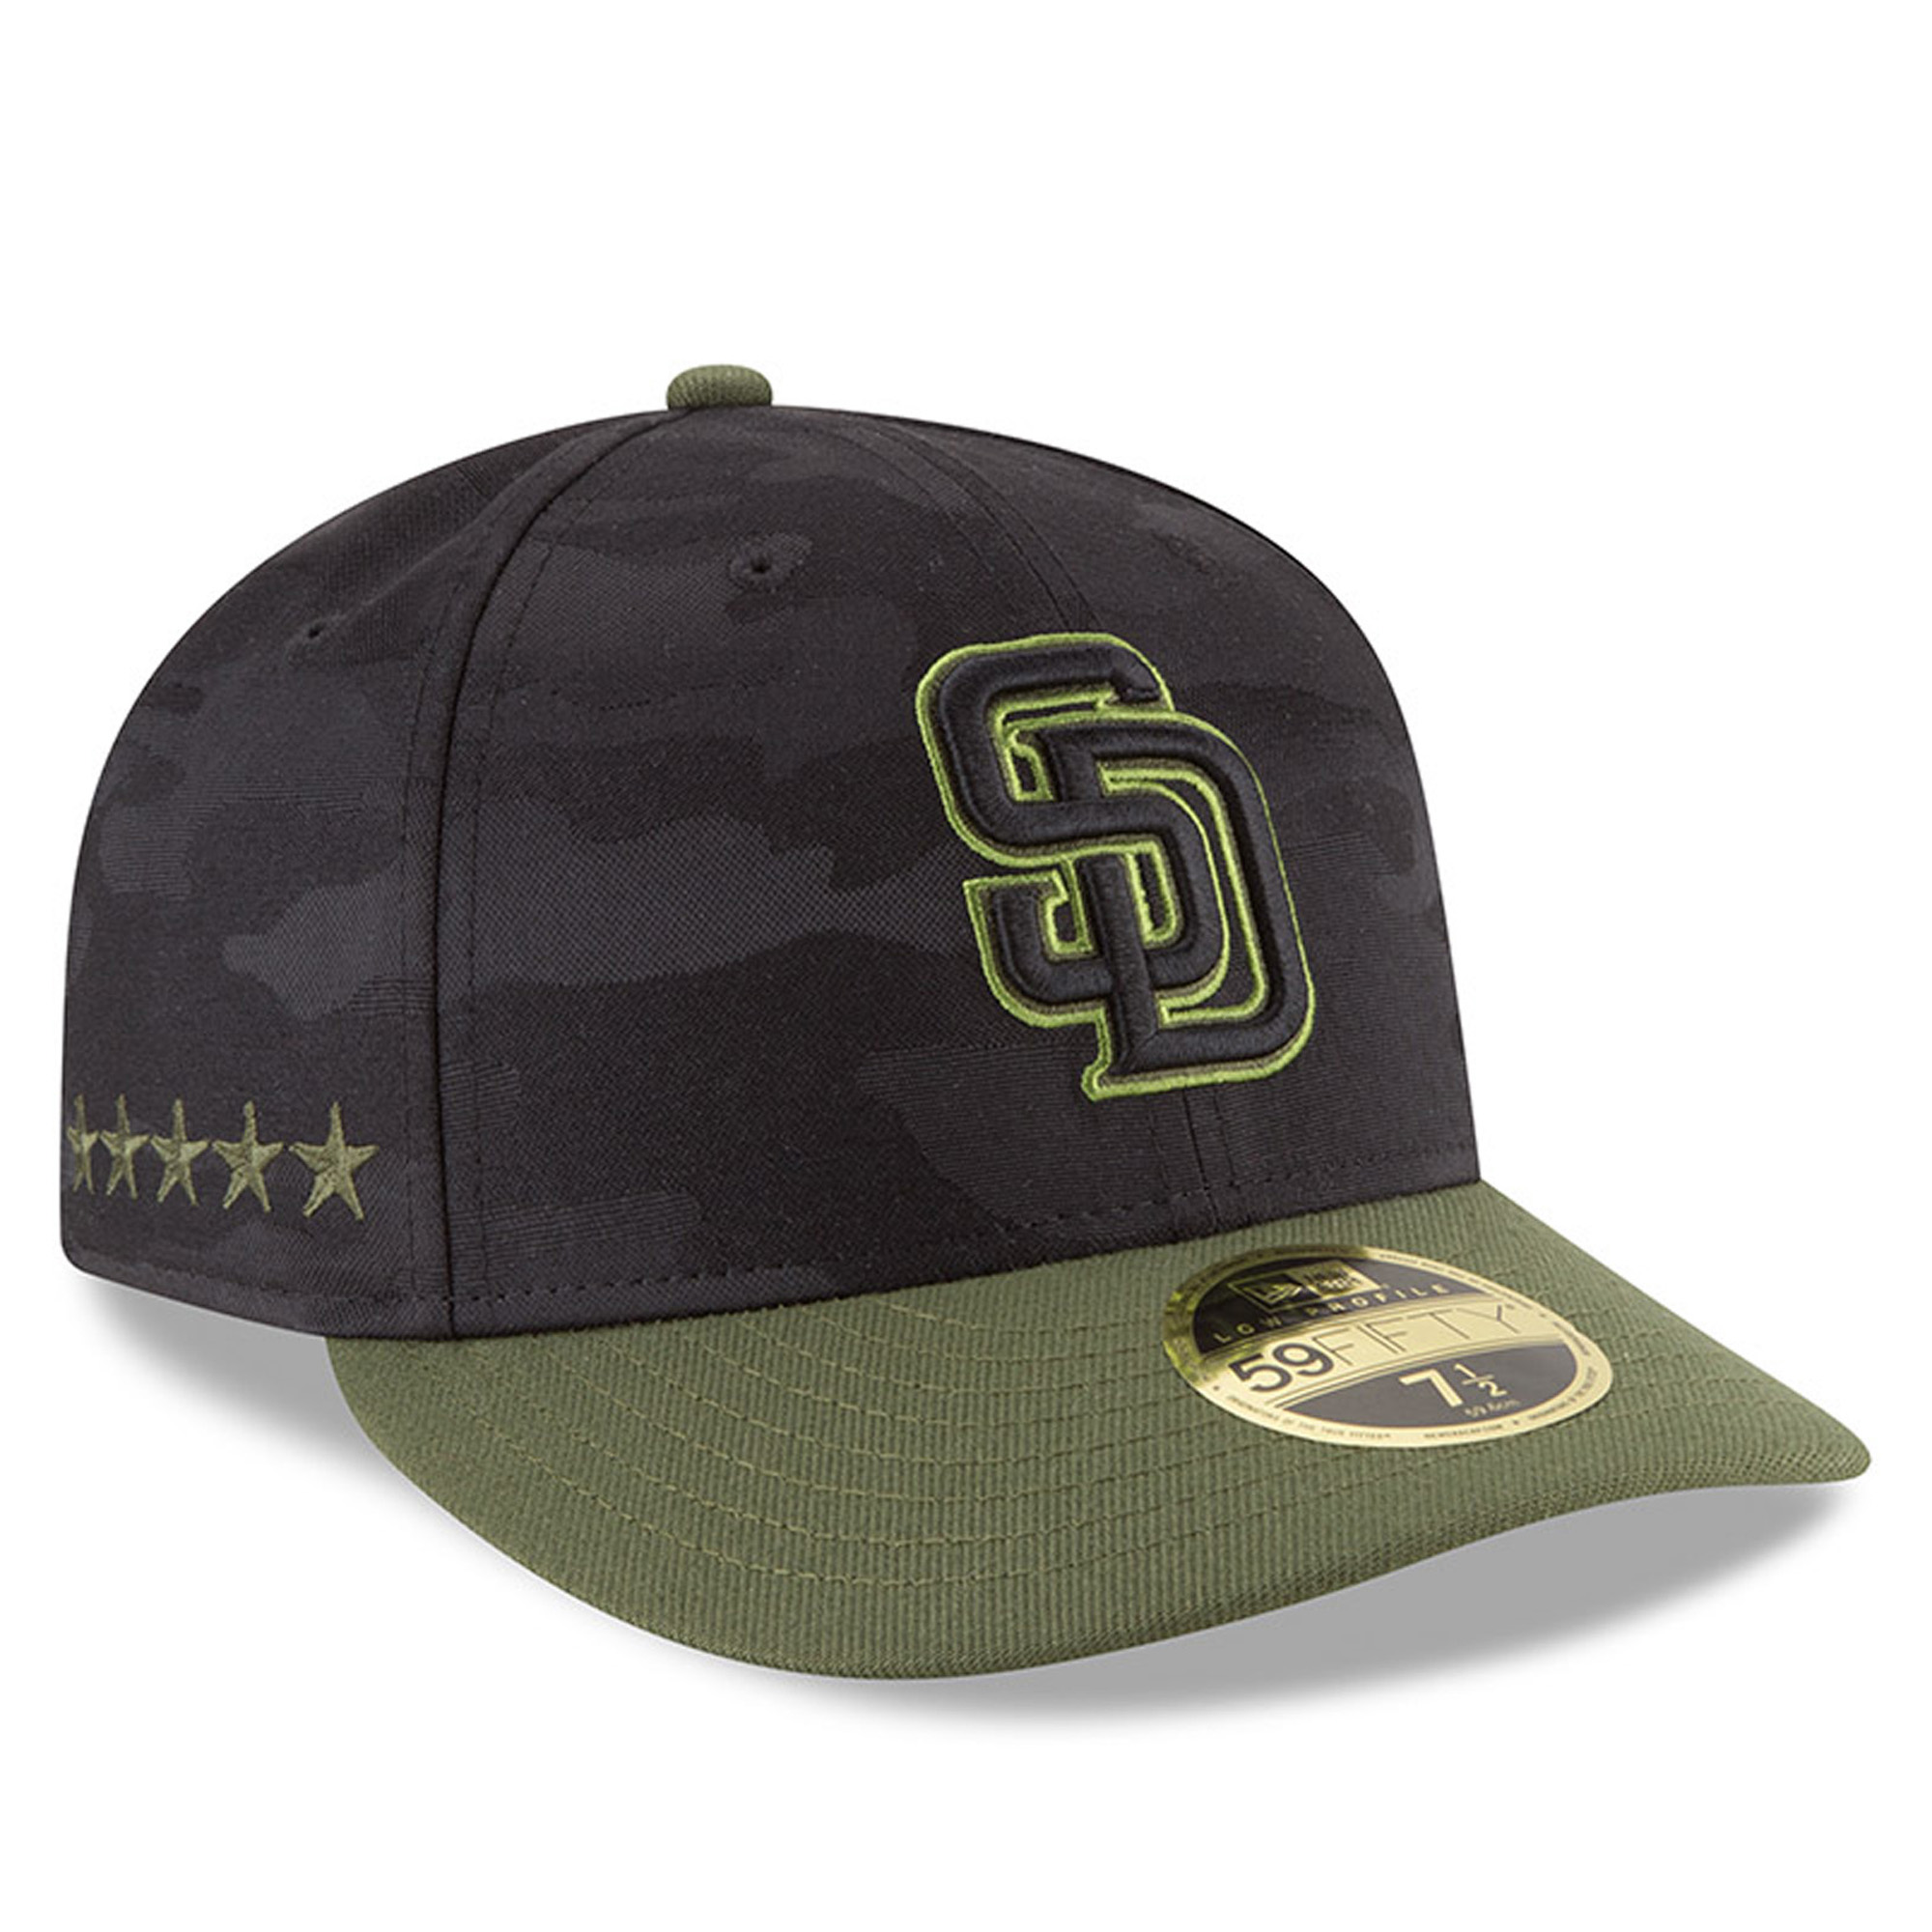 San Diego Padres New Era 2018 Memorial Day On-Field Low Profile 59FIFTY Fitted Hat - Black